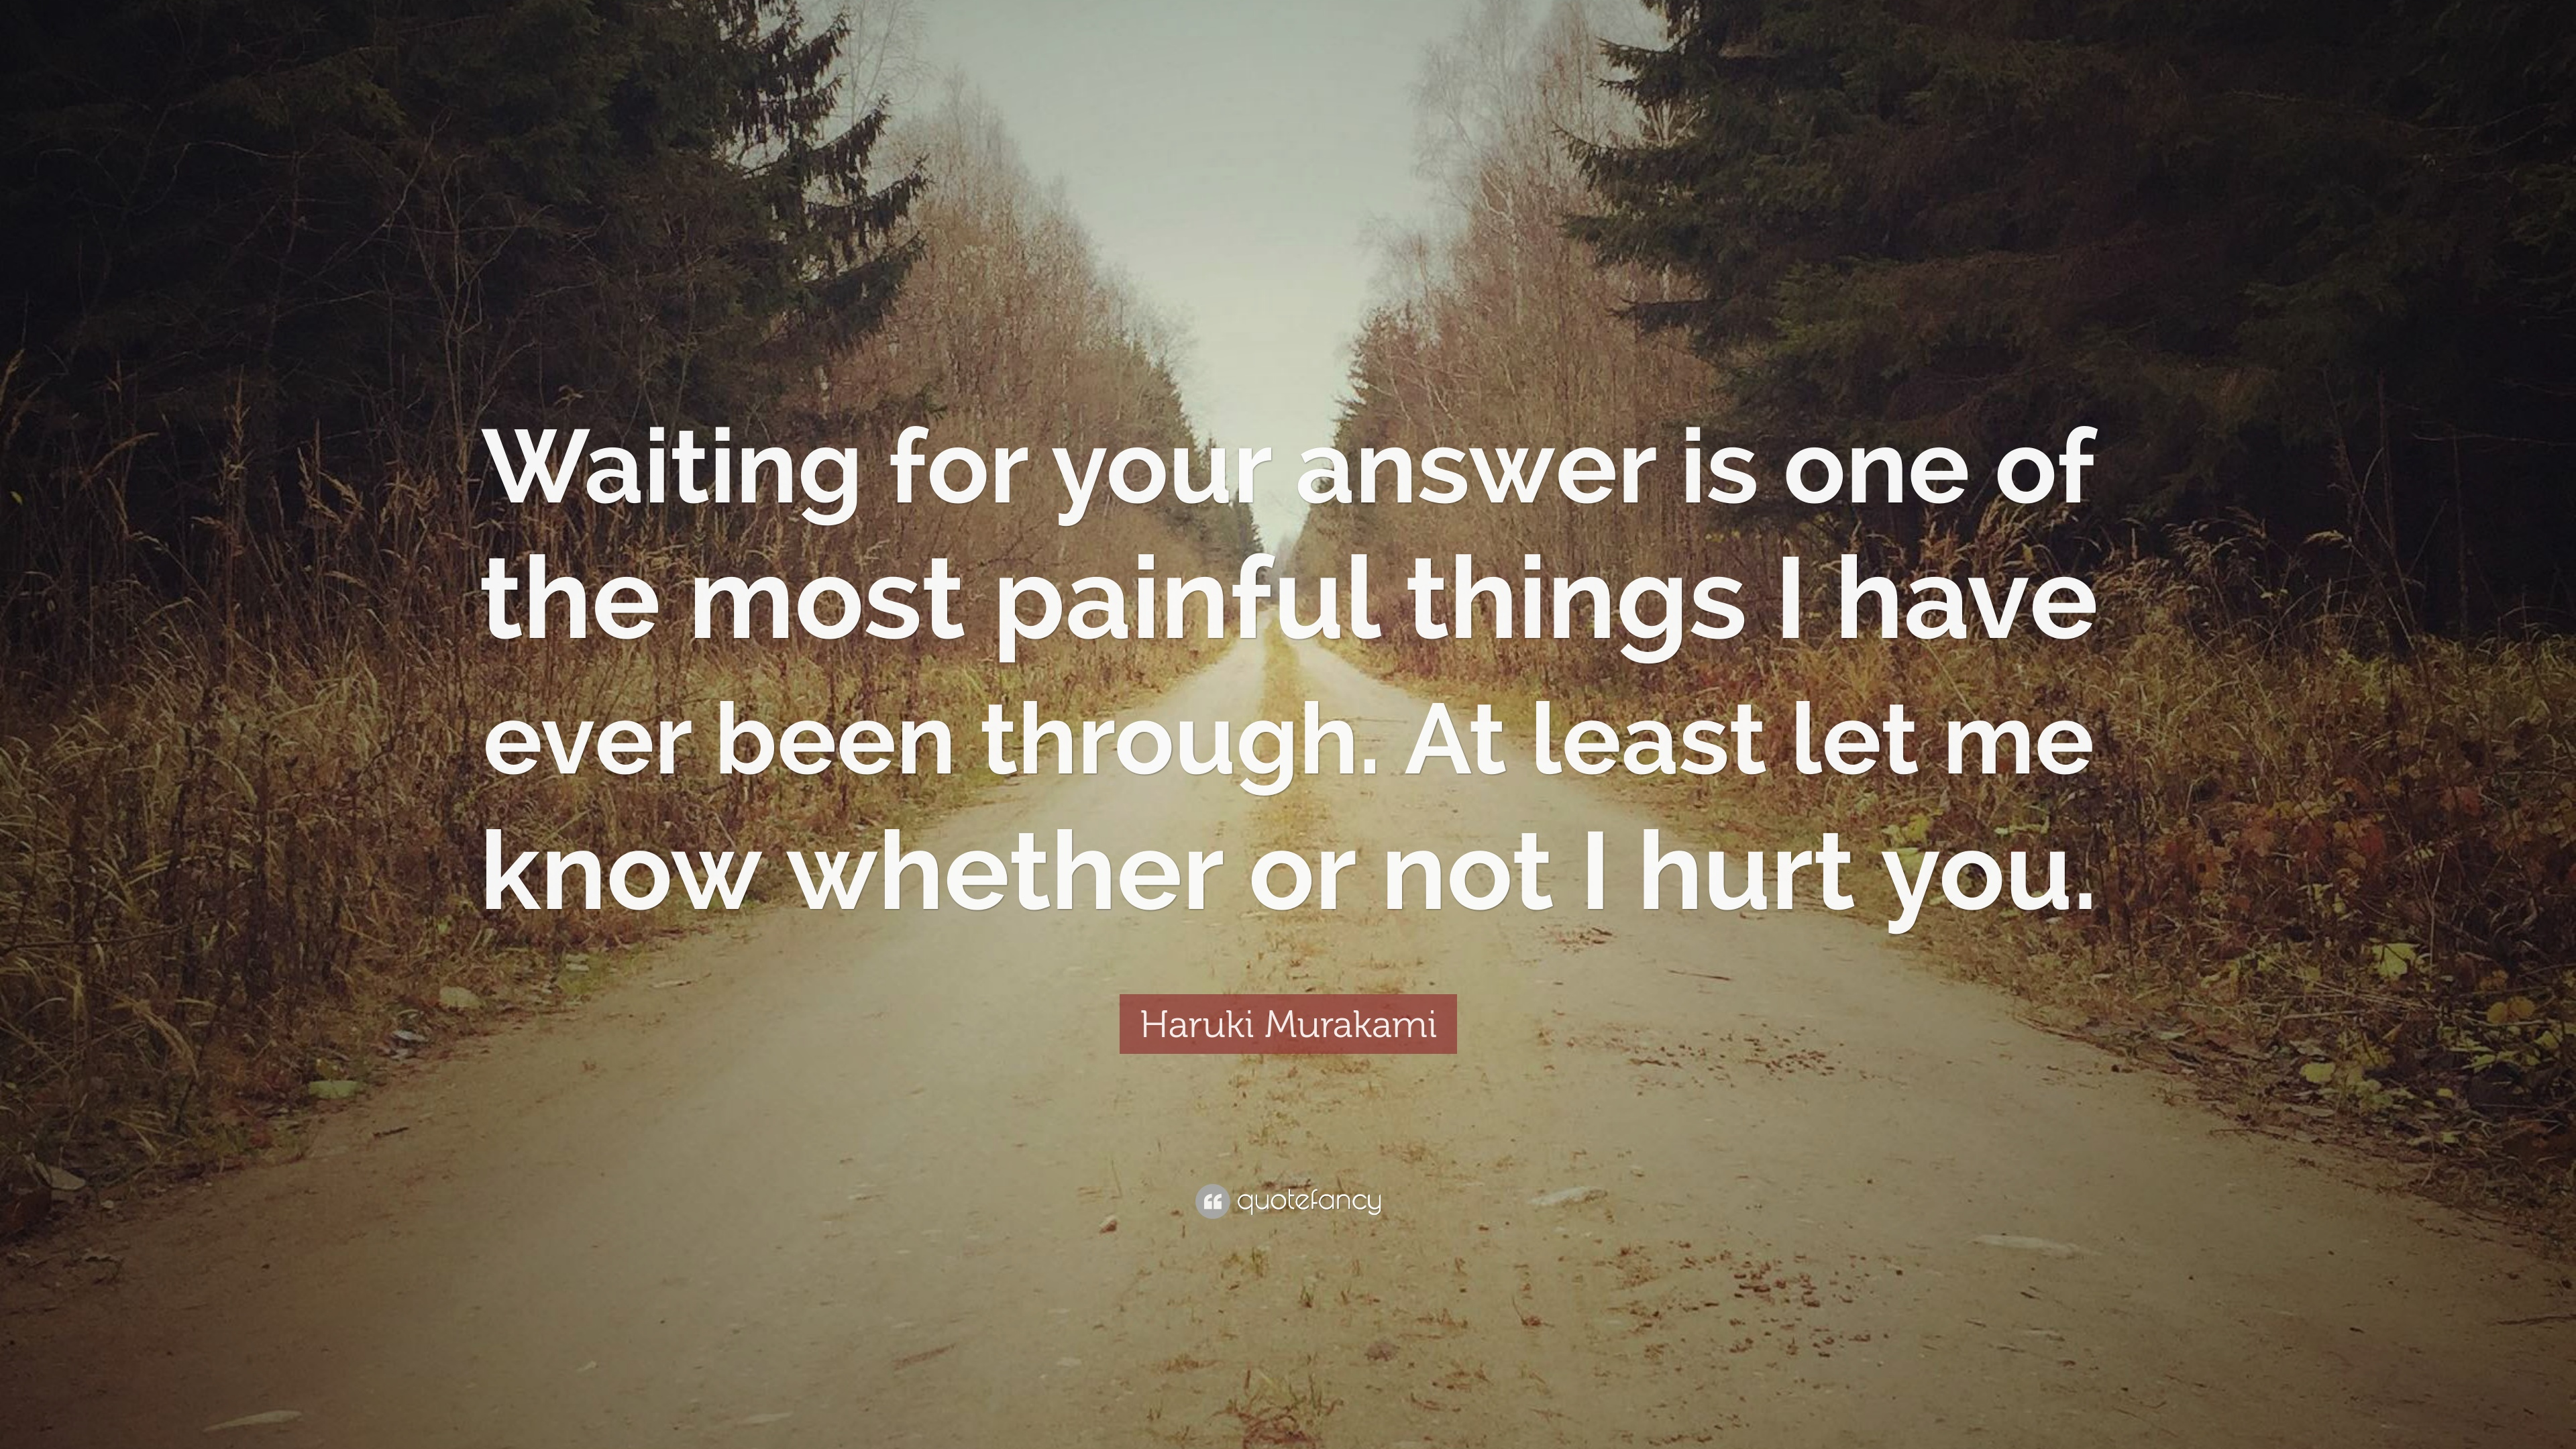 Haruki Murakami Quote Waiting For Your Answer Is One Of The Most